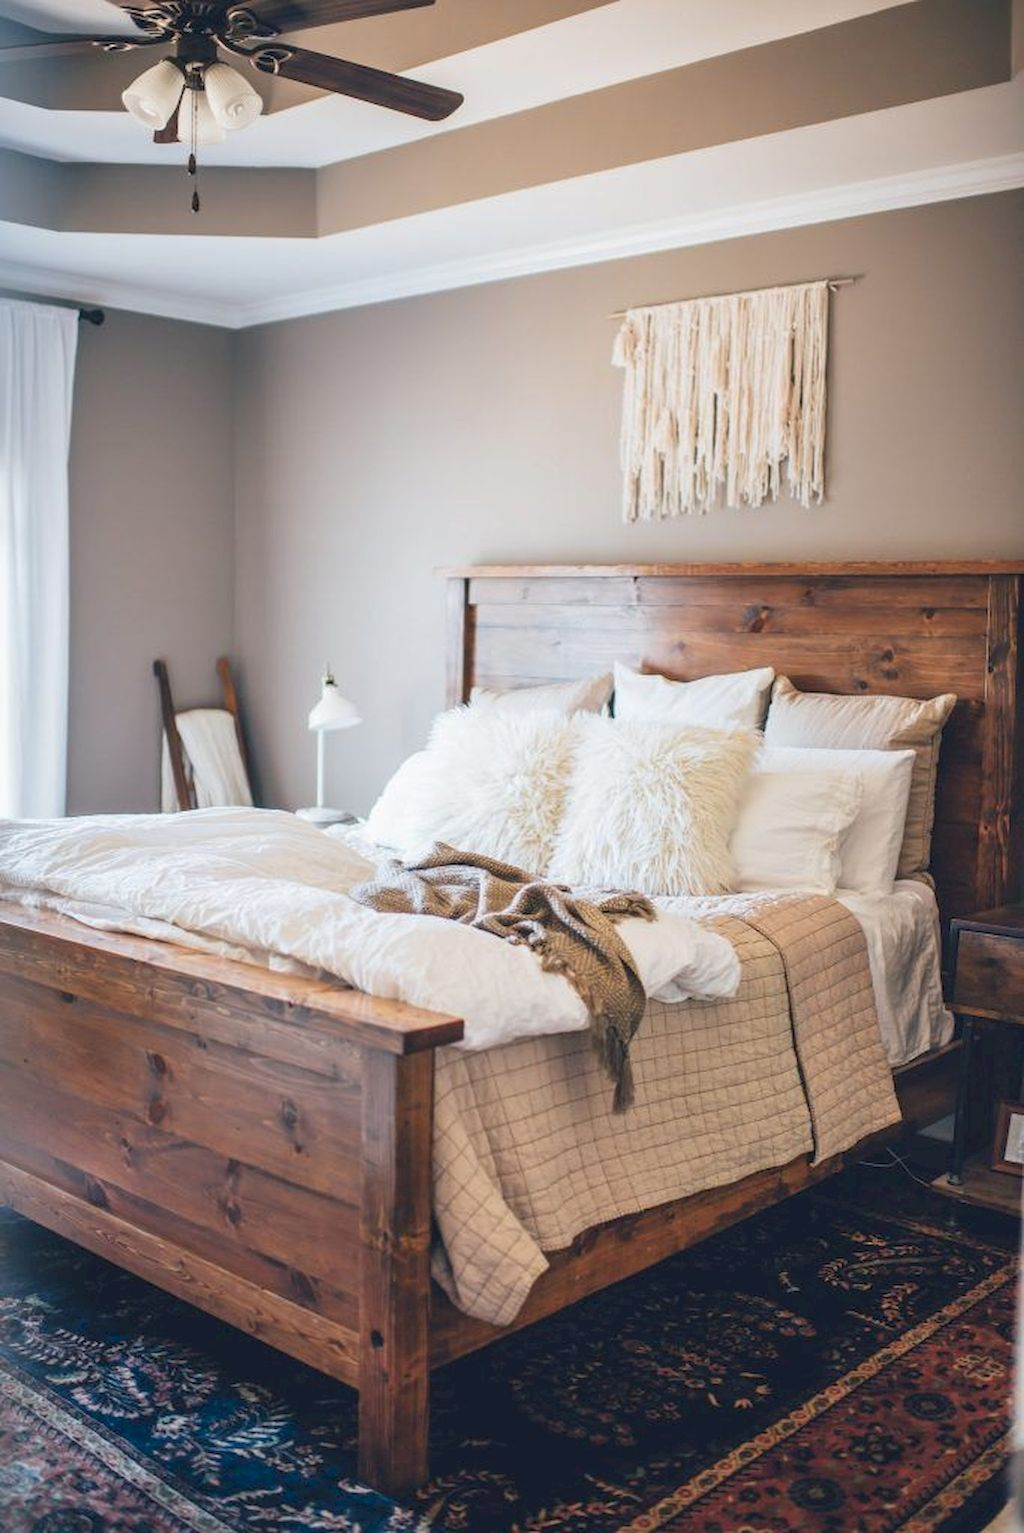 25 Absorbing Rustic Bedroom Concepts (Passions For Sleeping) - 15A